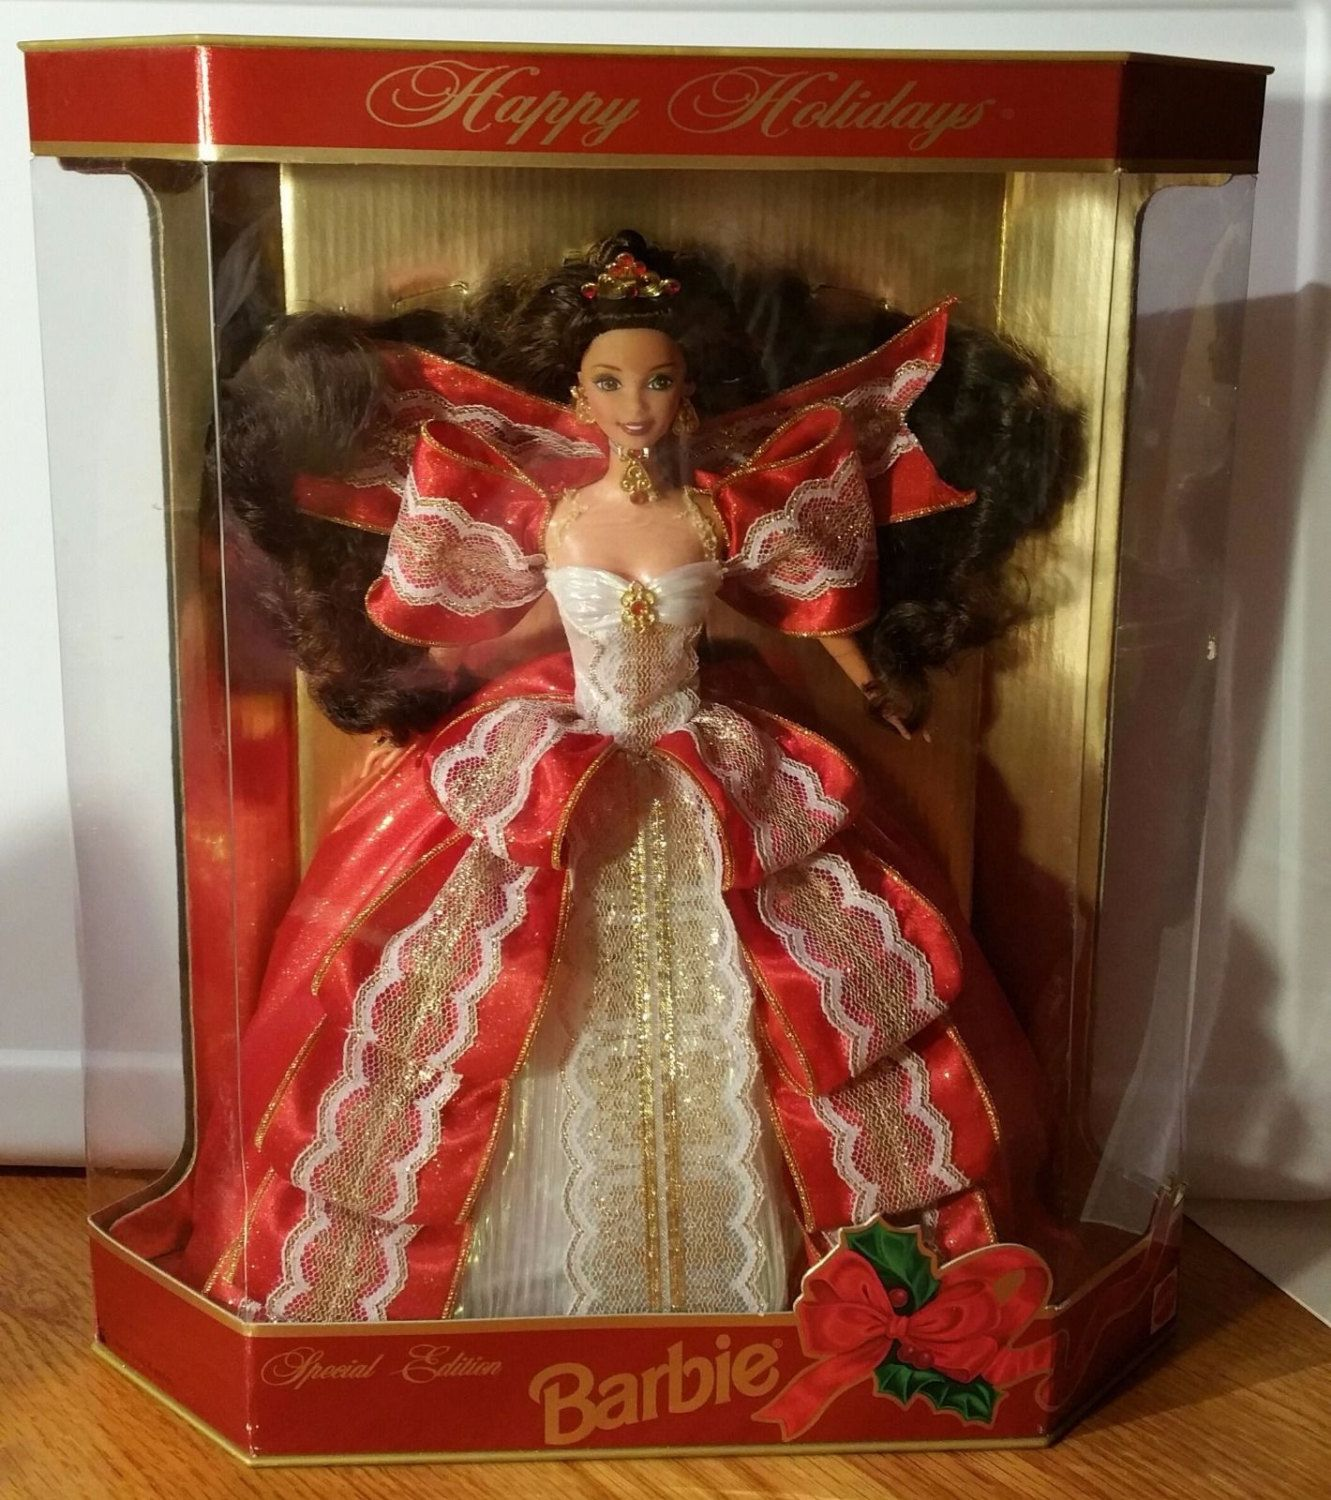 10th anniversary happy holidays barbie special edition